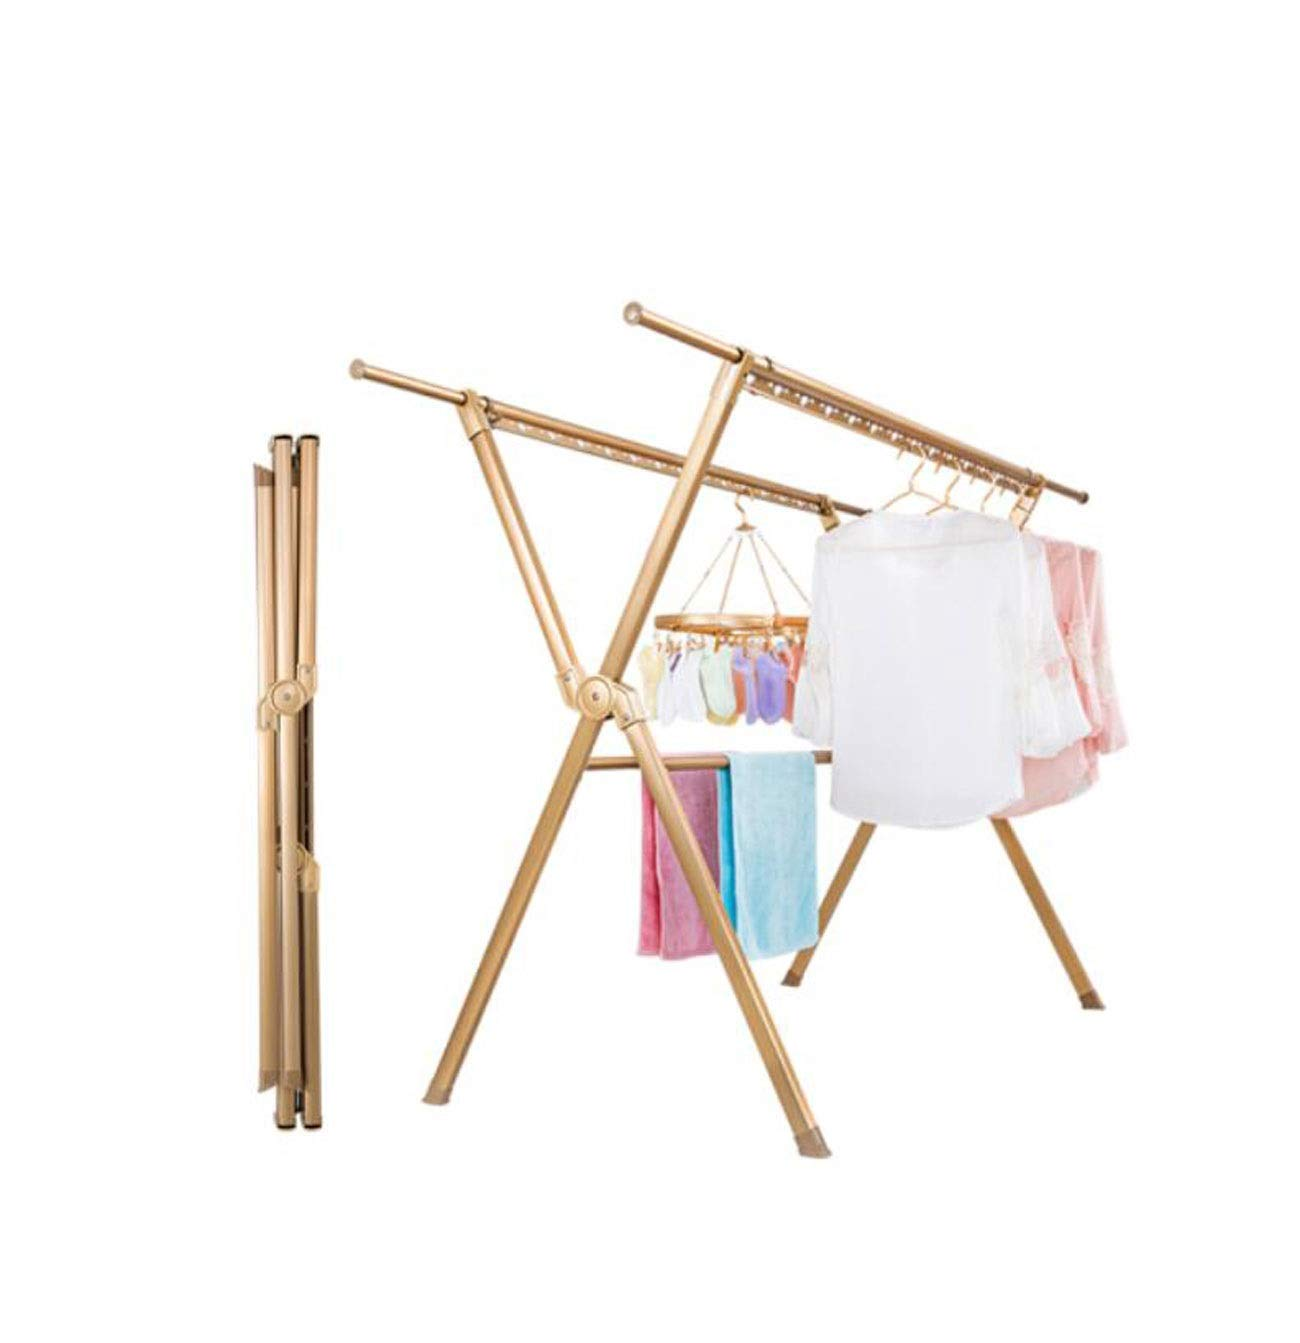 HYZLYJ Drying Racks, Floor-Standing Cool Racks, Folding Racks, X-Type Clothes Rails, Telescopic Drying Quilts, Suitable for Indoor and Outdoor Use